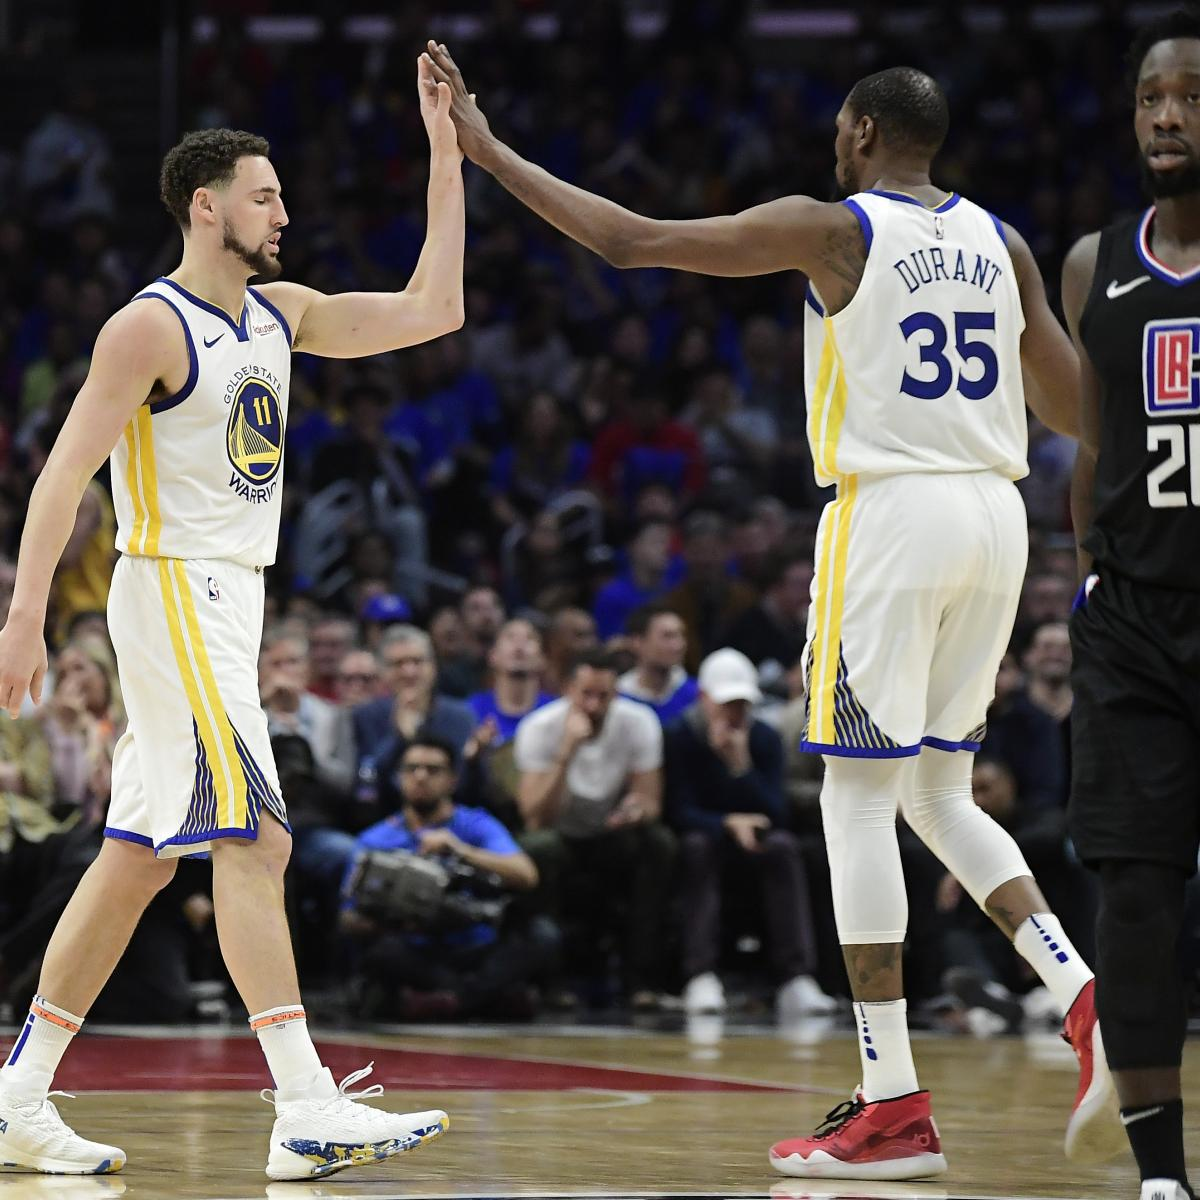 NBA Playoff Schedule 2019: Wednesday TV Coverage And Game